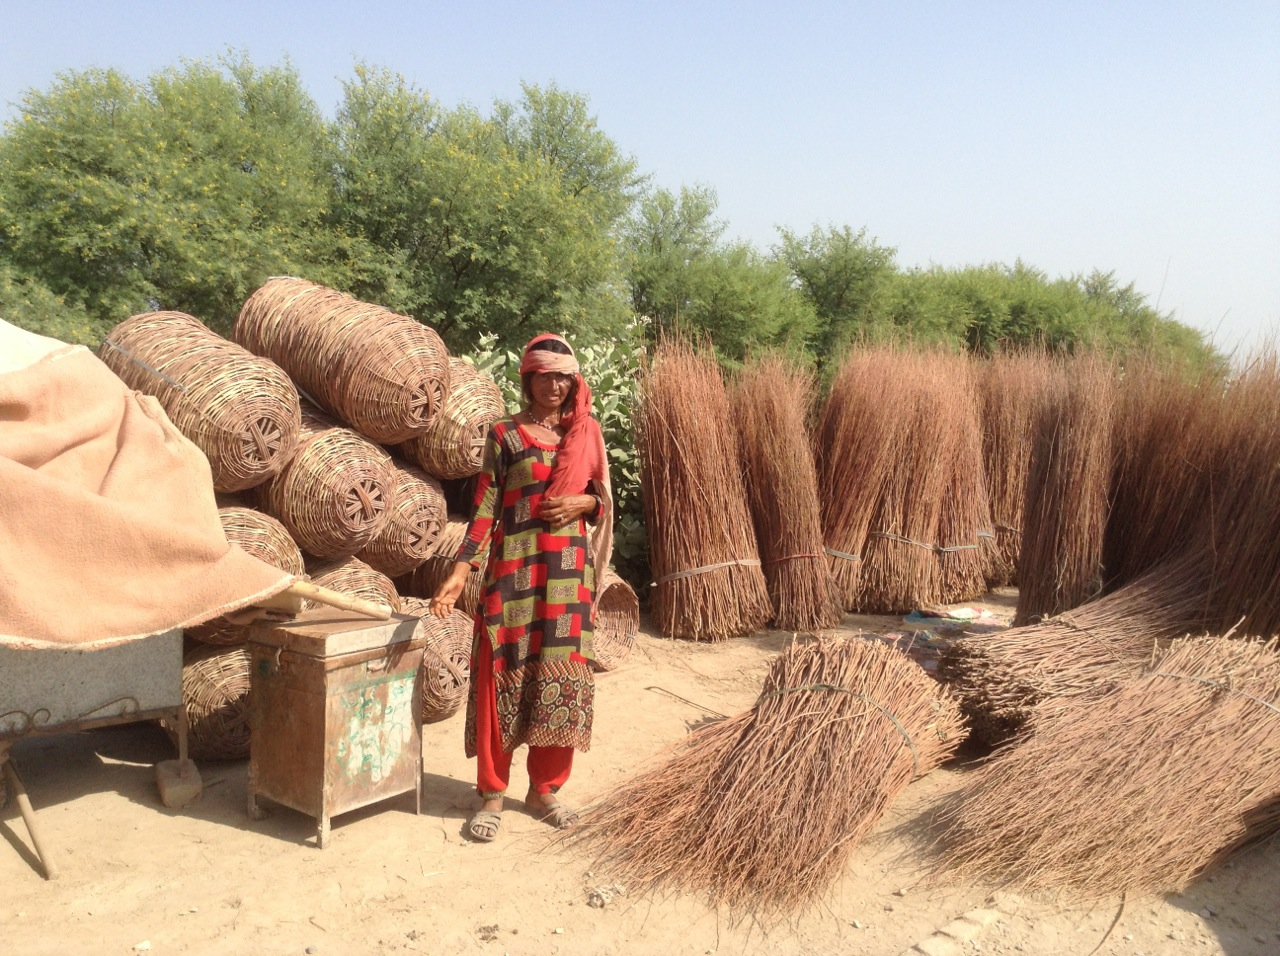 A woman weaves baskets from small branches as a source of income